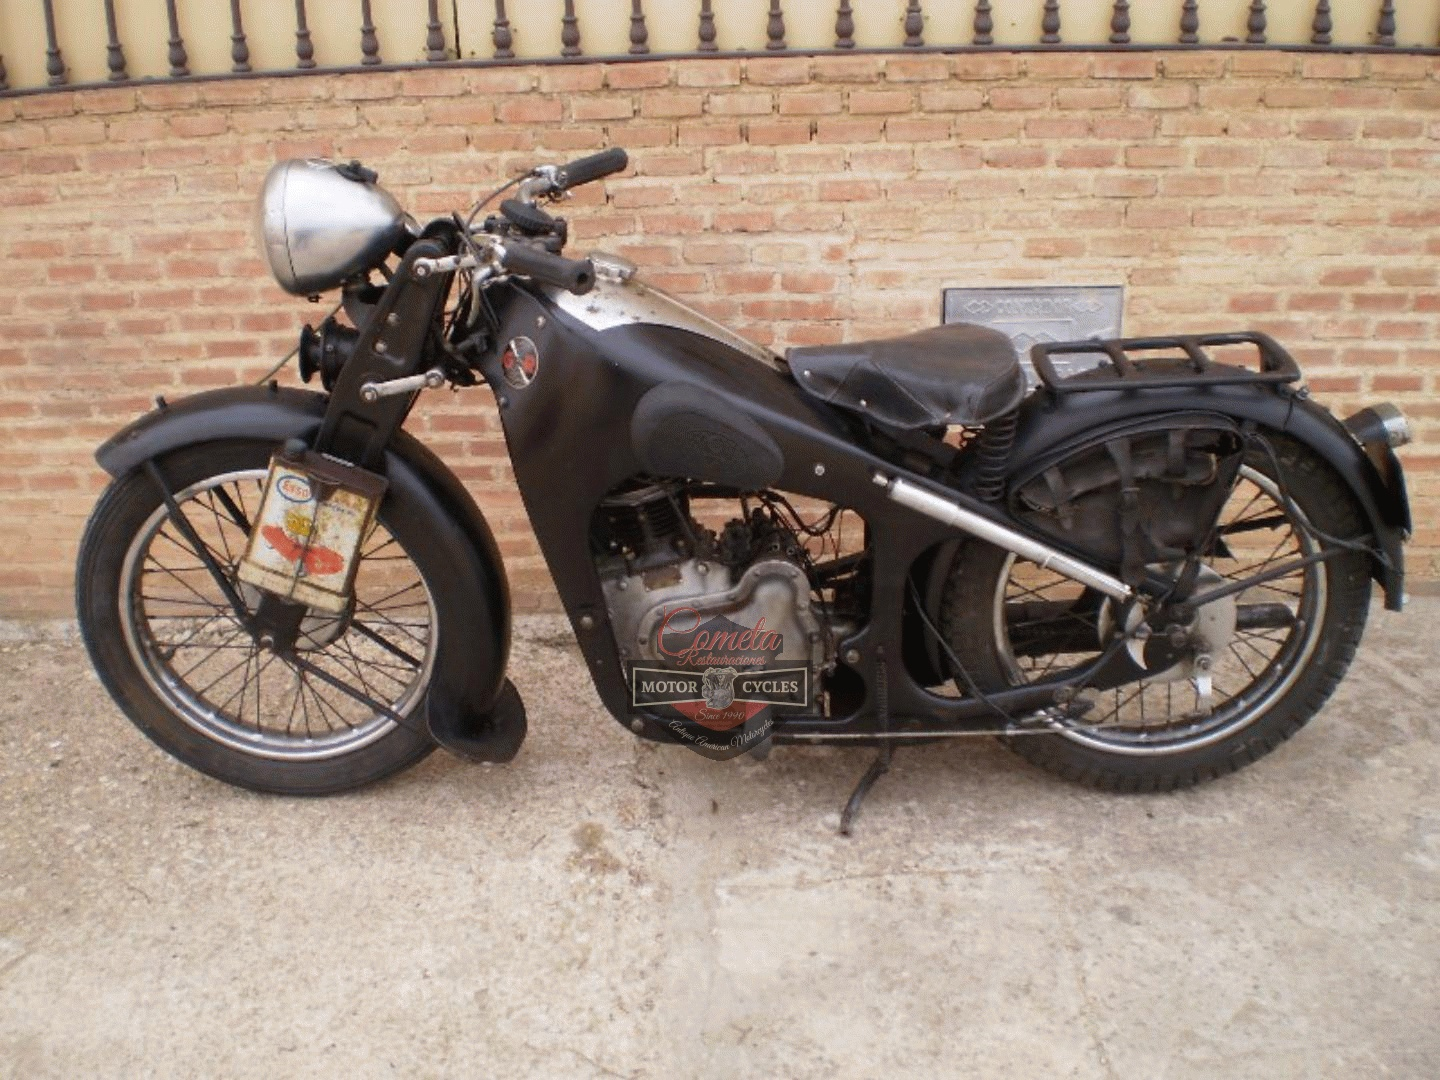 GNOME RHONE SUPER MAJOR SPORT 350 OHV AÑO 1935 ORIGINAL CONDICION !